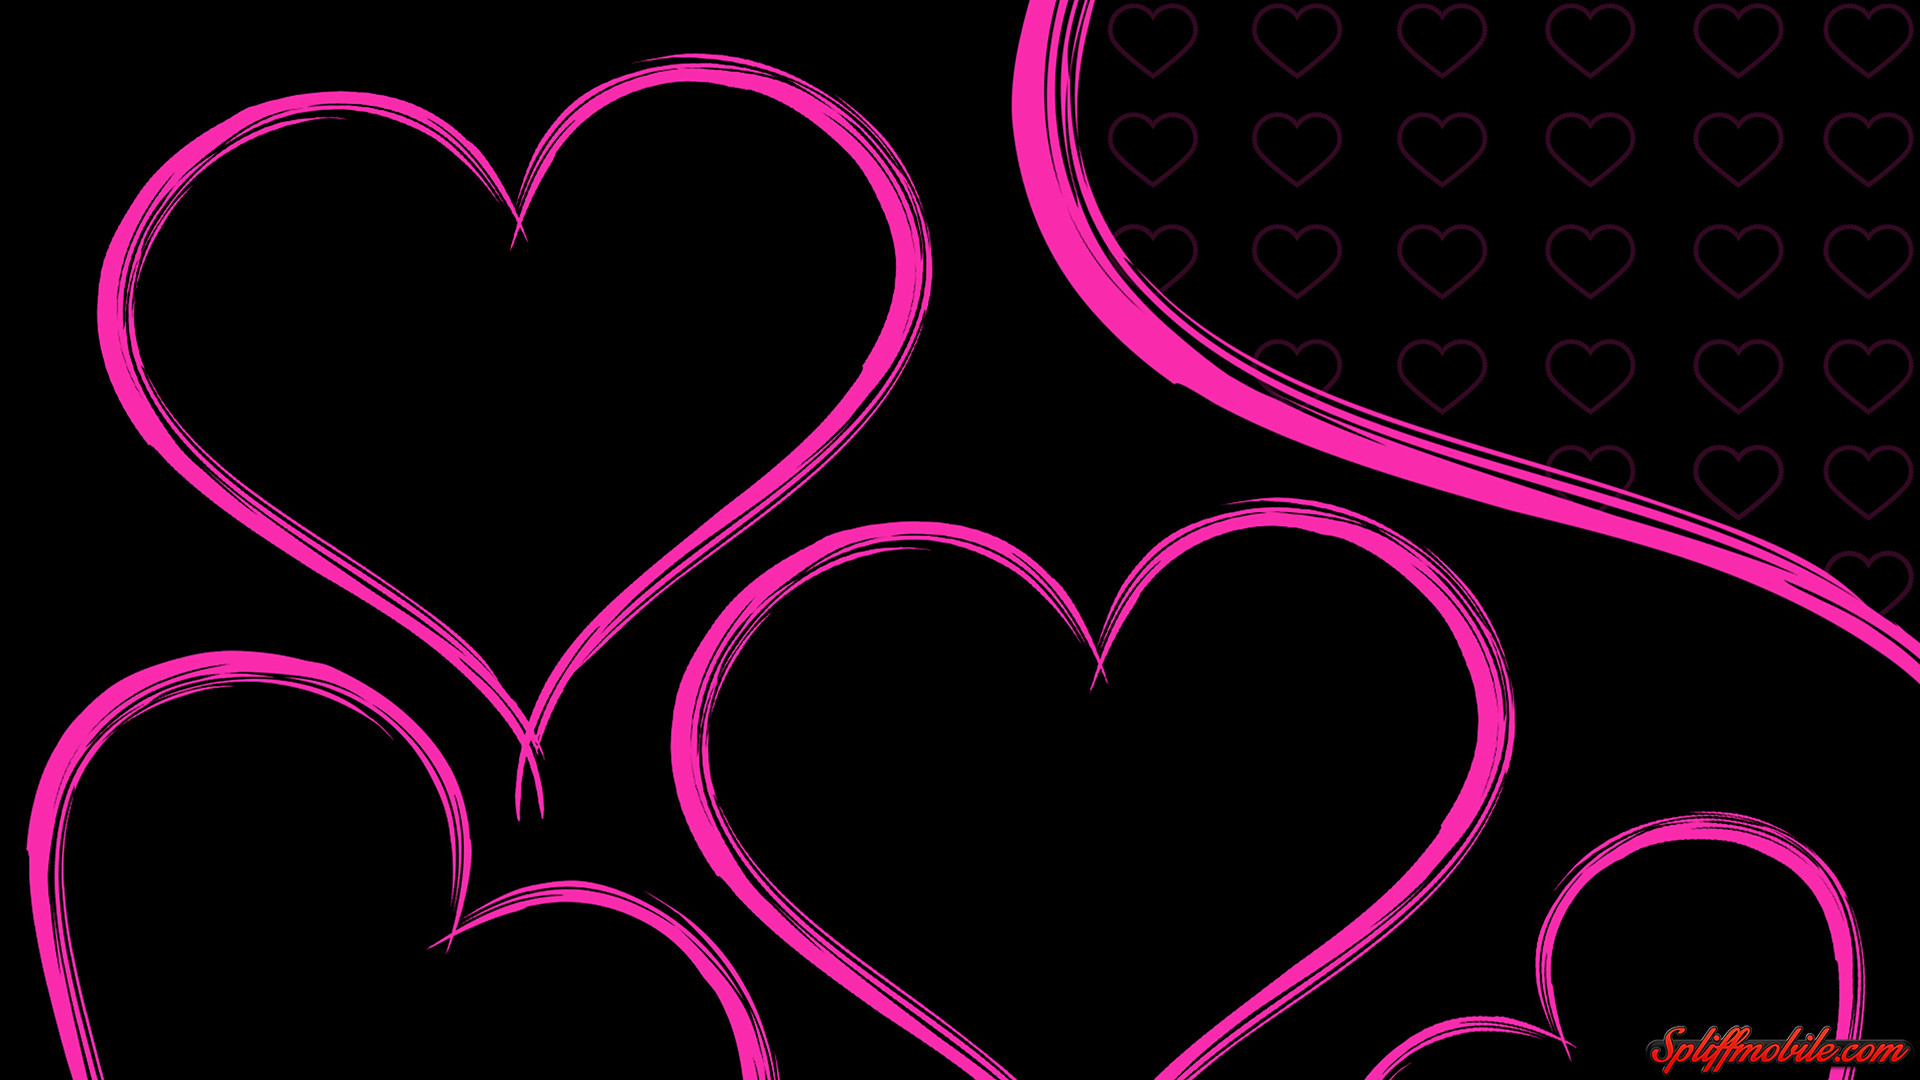 1920x1080 Hearts Wallpaper HD